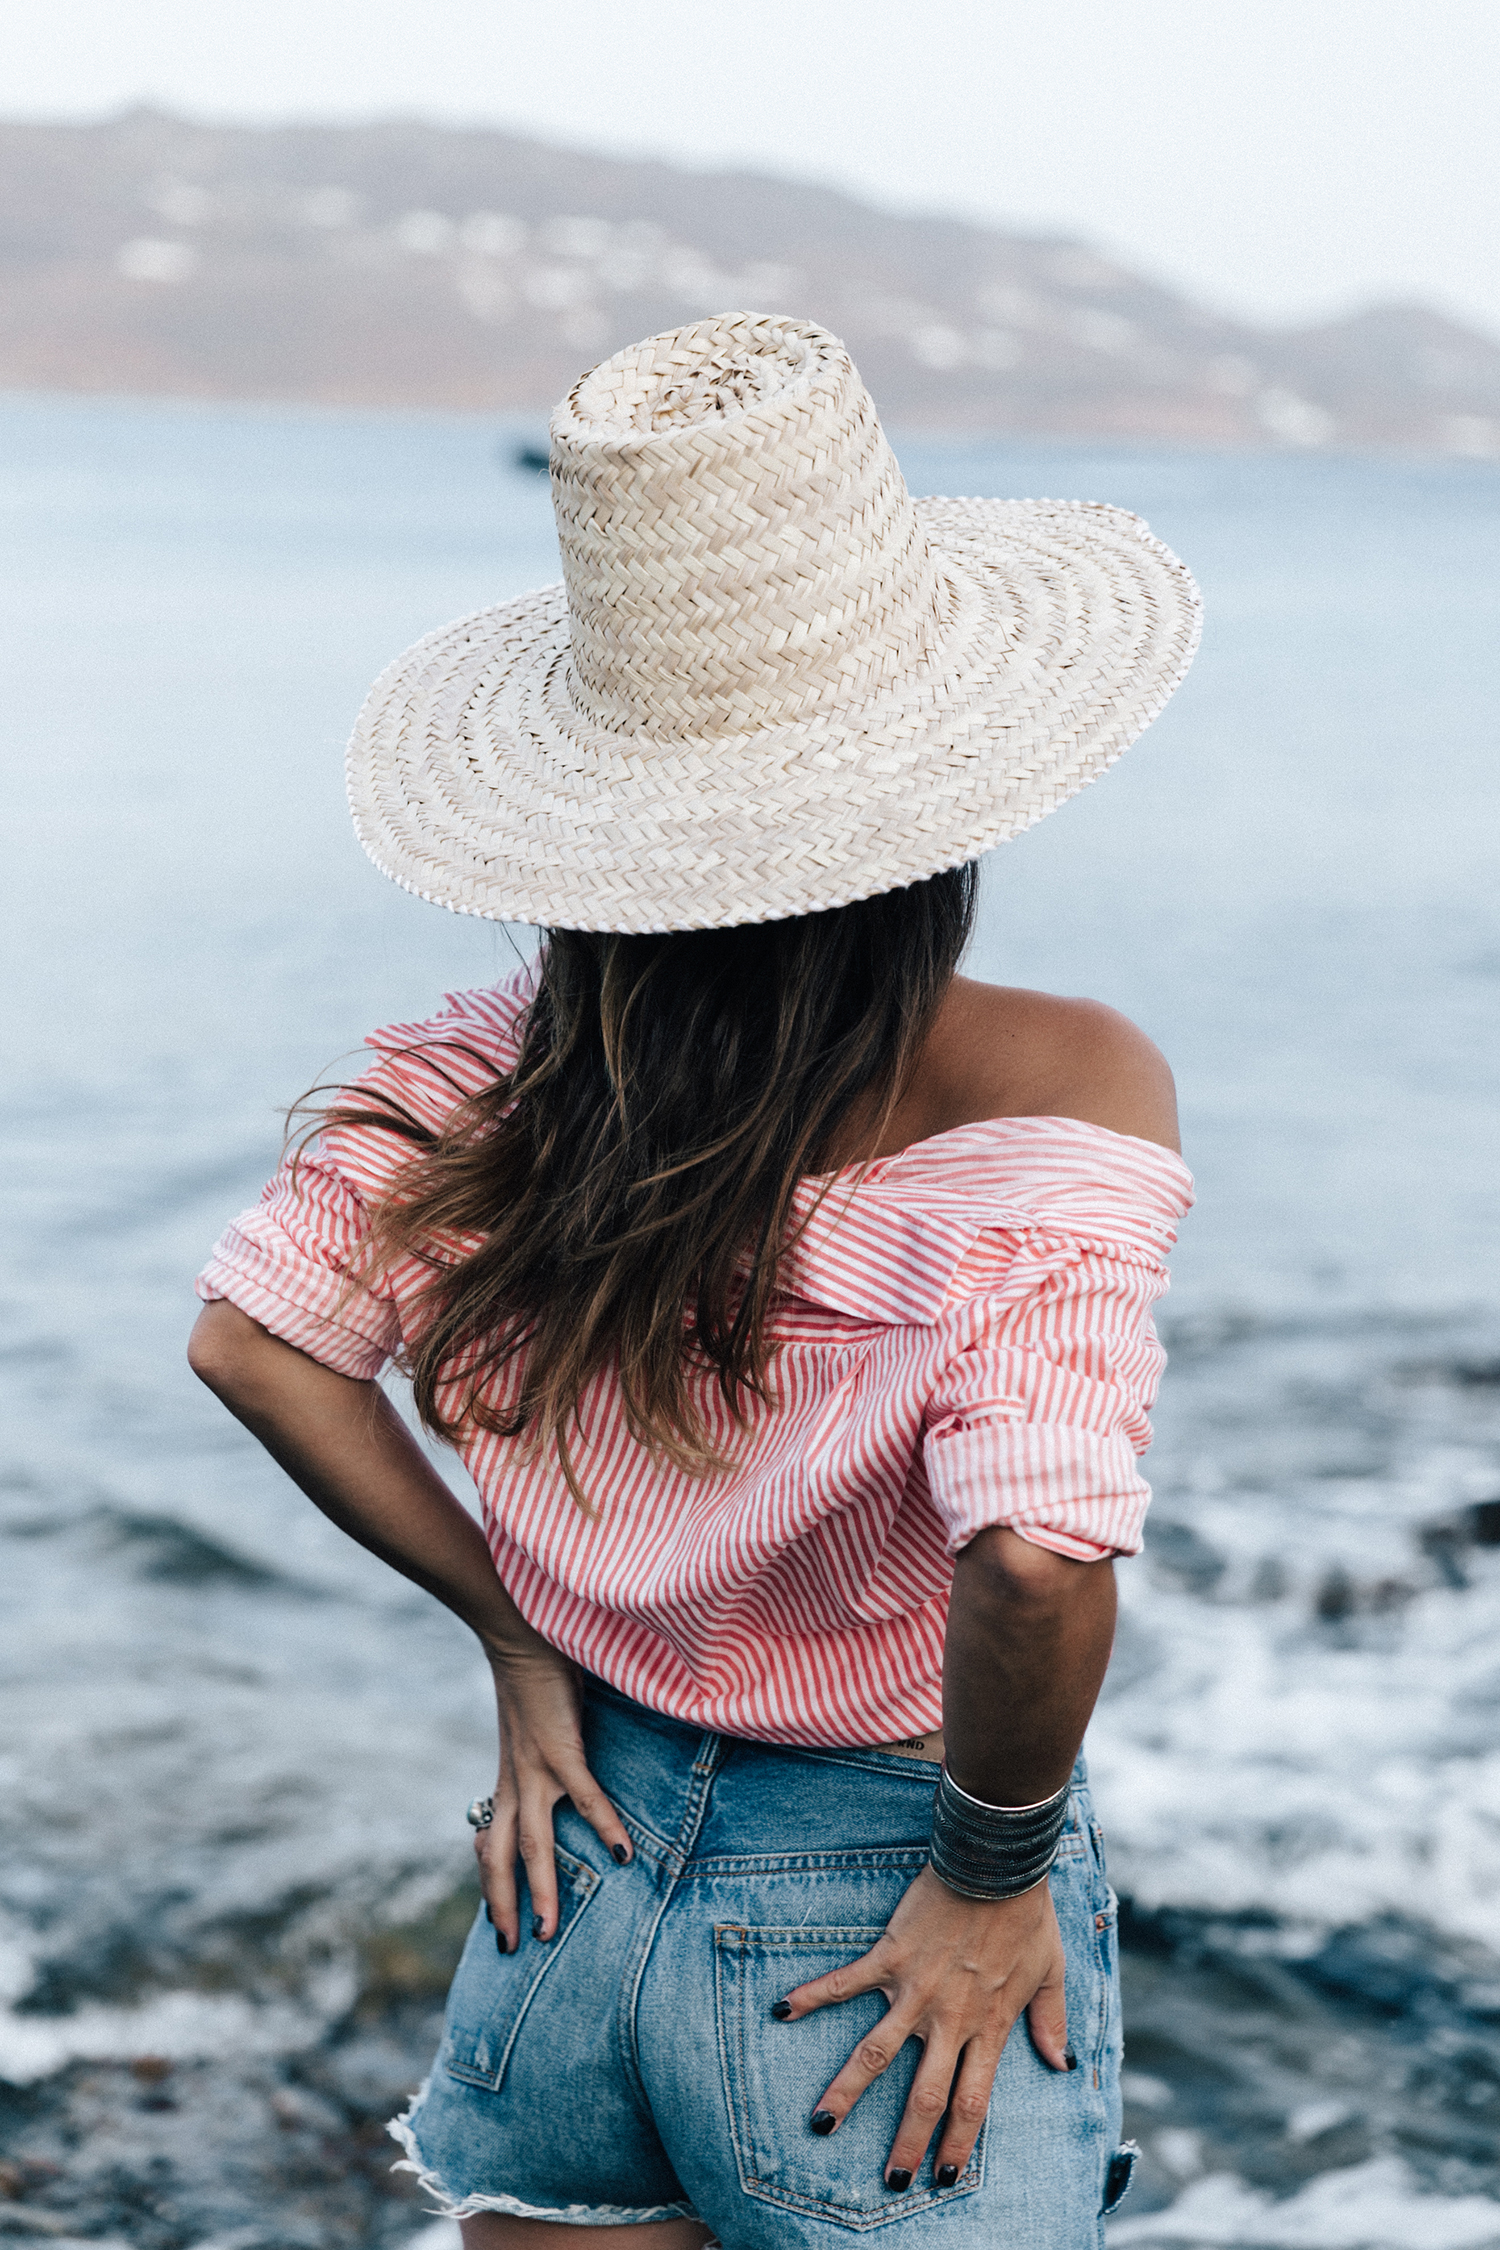 Mykonos-Collage_on_The_Road-Striped_Shirt-GRLFRND_Shorts-Straw_Hat-Denim-Espadrilles-Soludos_Escapes-Greece-Outfit-76